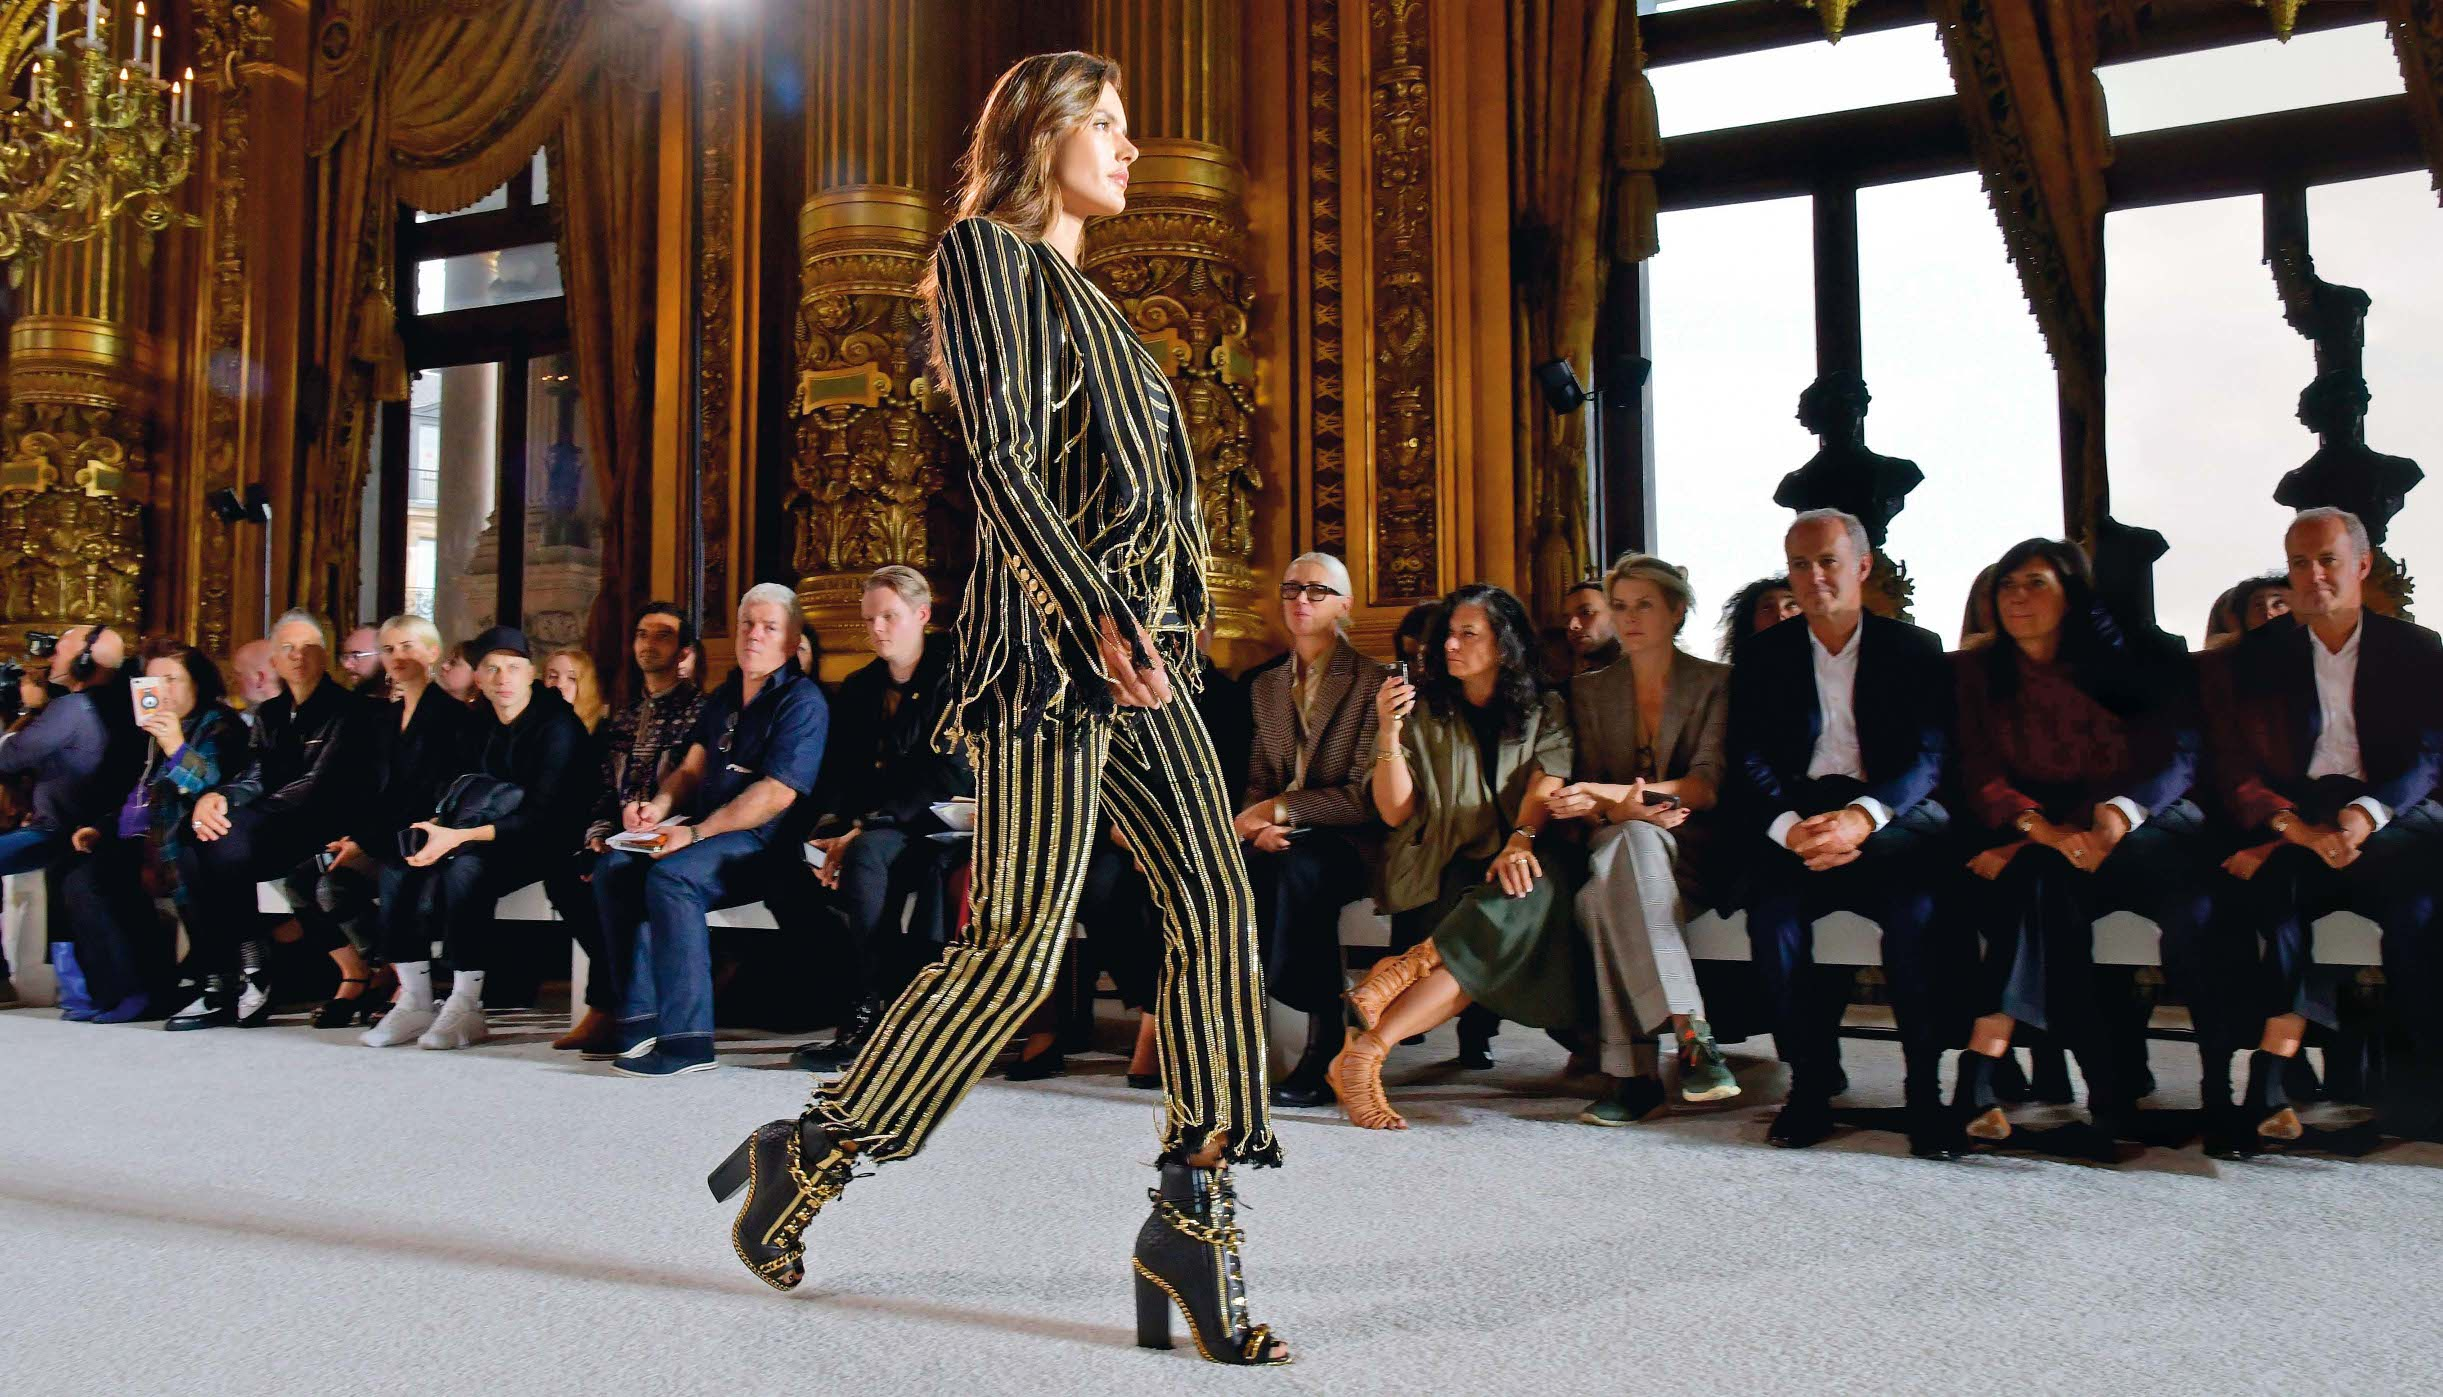 Alessandra Ambrosio on the catwalk Balmain show, Runway, Spring Summer 2018, Paris Fashion Week, France - 28 Sep 2017, Image: 350847887, License: Rights-managed, Restrictions: , Model Release: no, Credit line: Profimedia, TEMP Rex Features